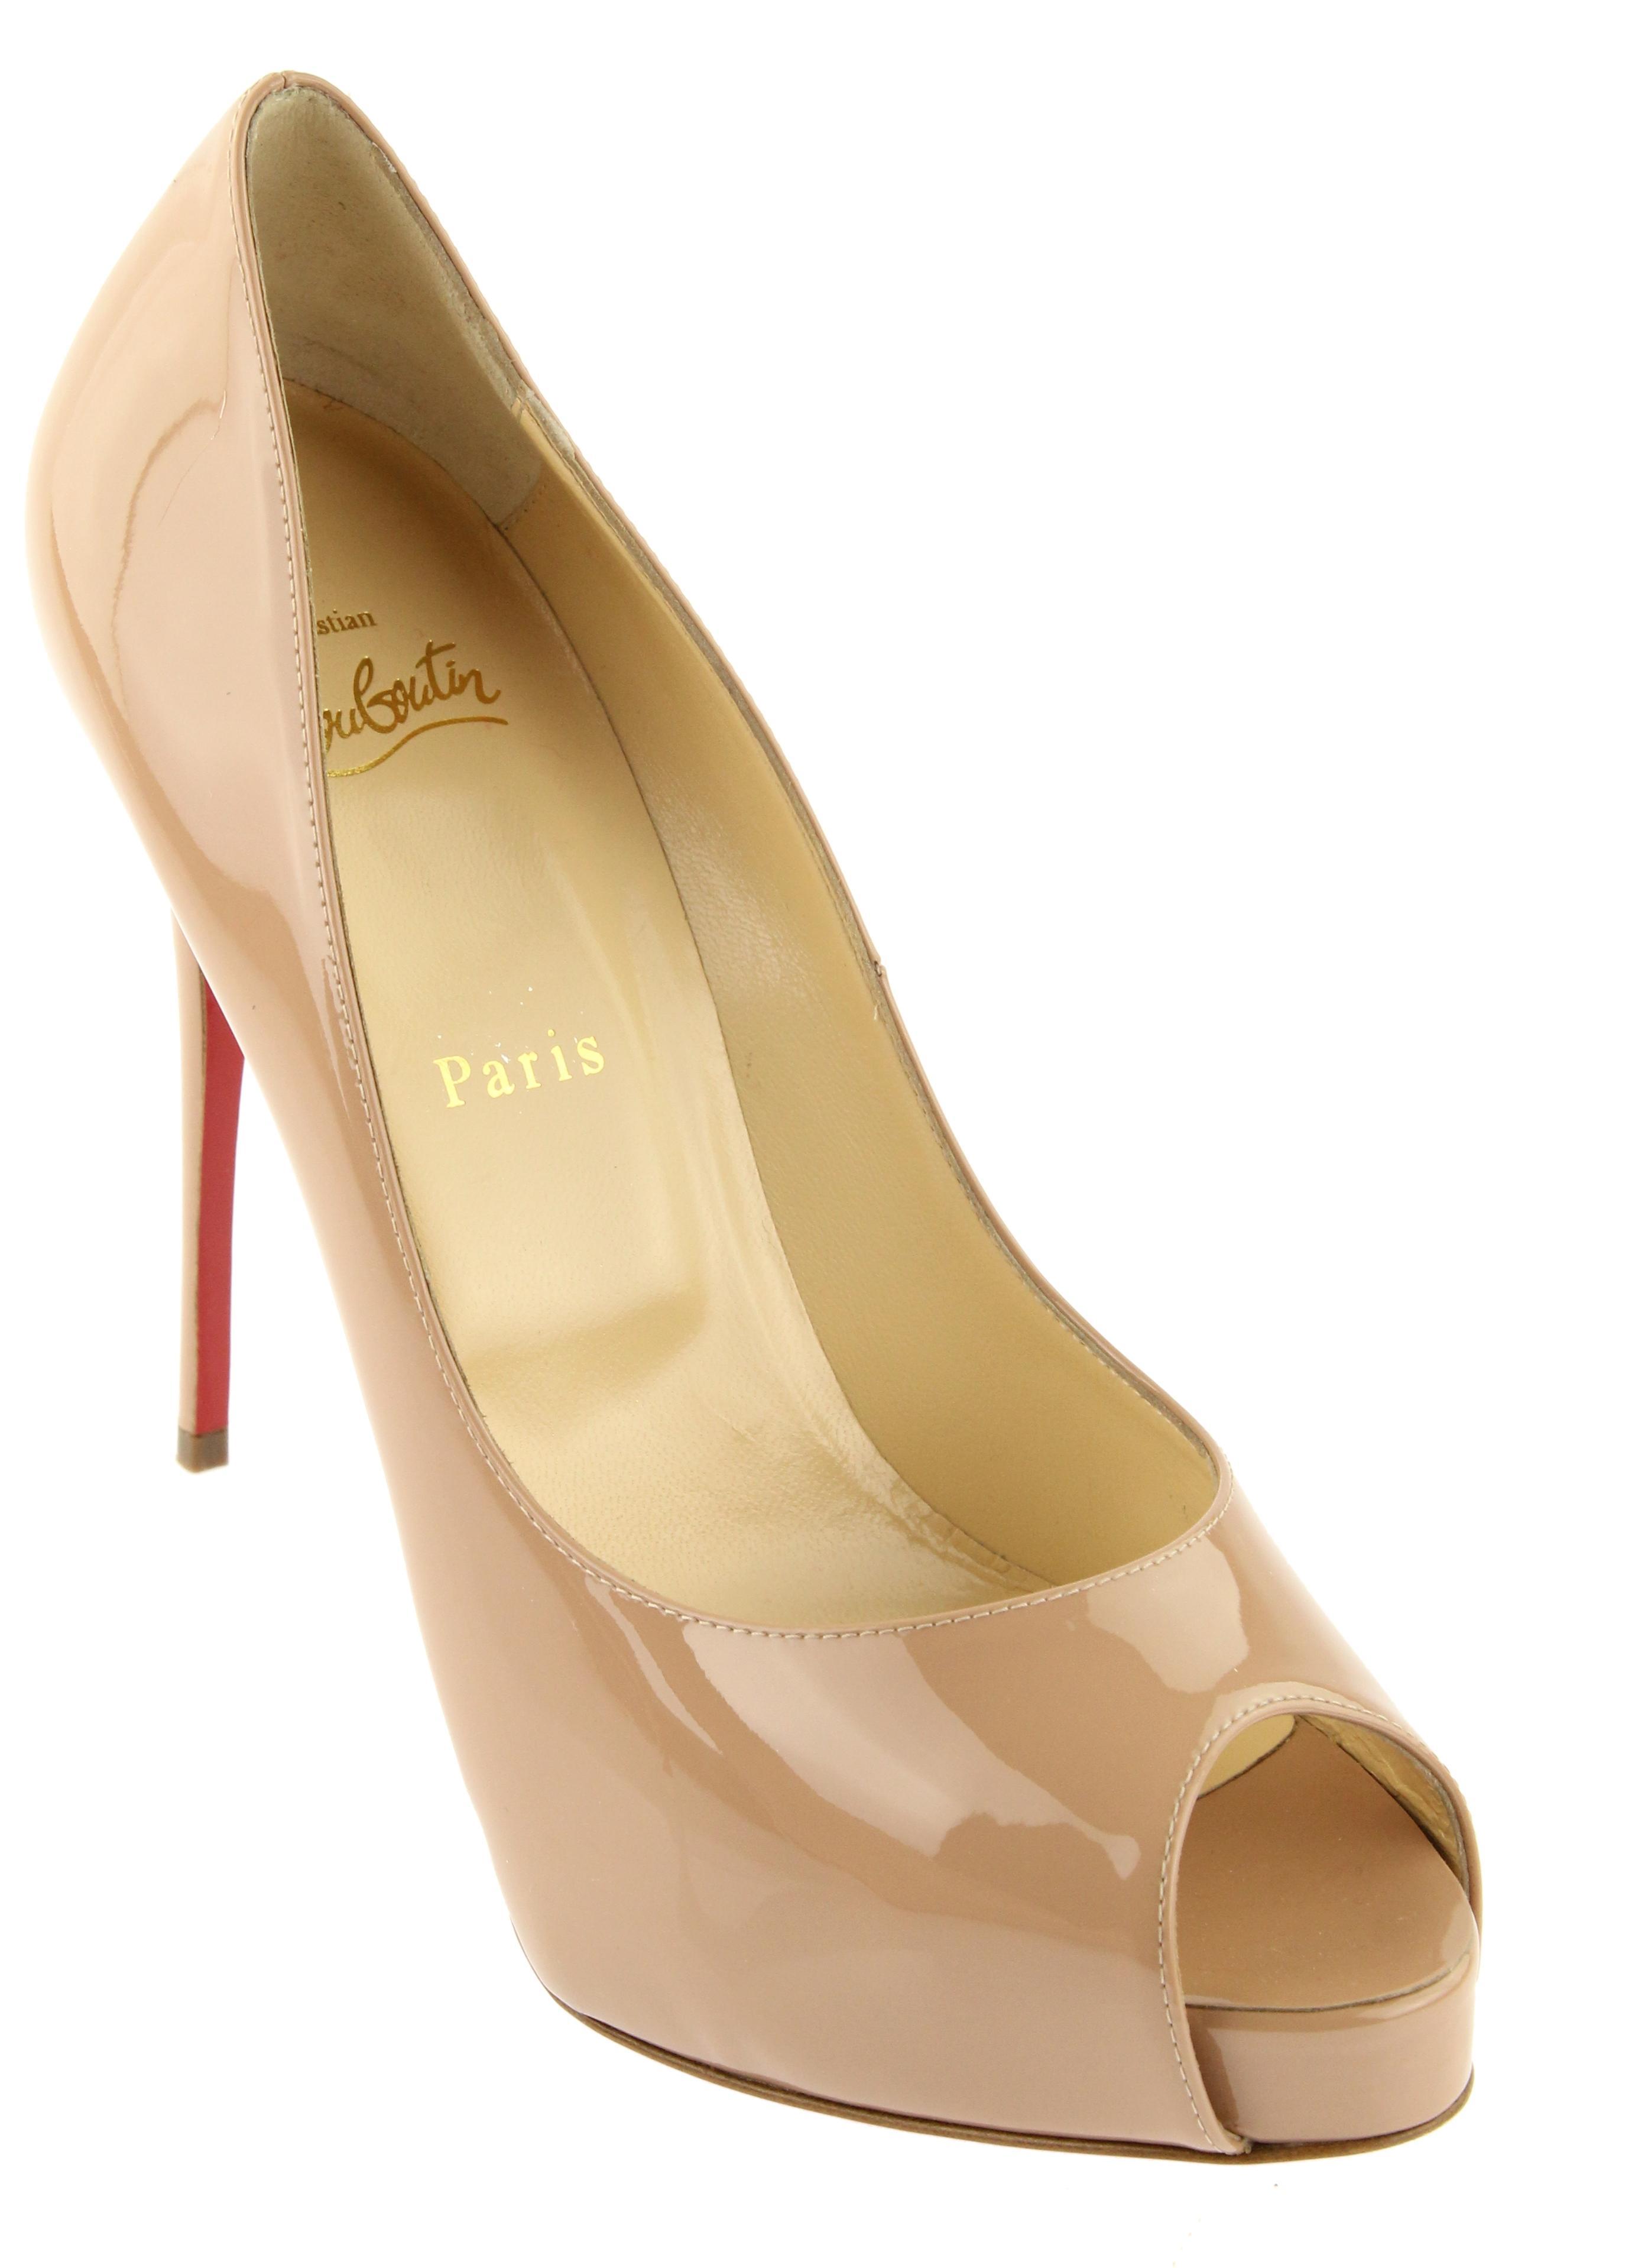 Christian Louboutin Nude New Very Prive Patent Pumps Size EU 40.5 (Approx. US 10.5) Regular (M, B)